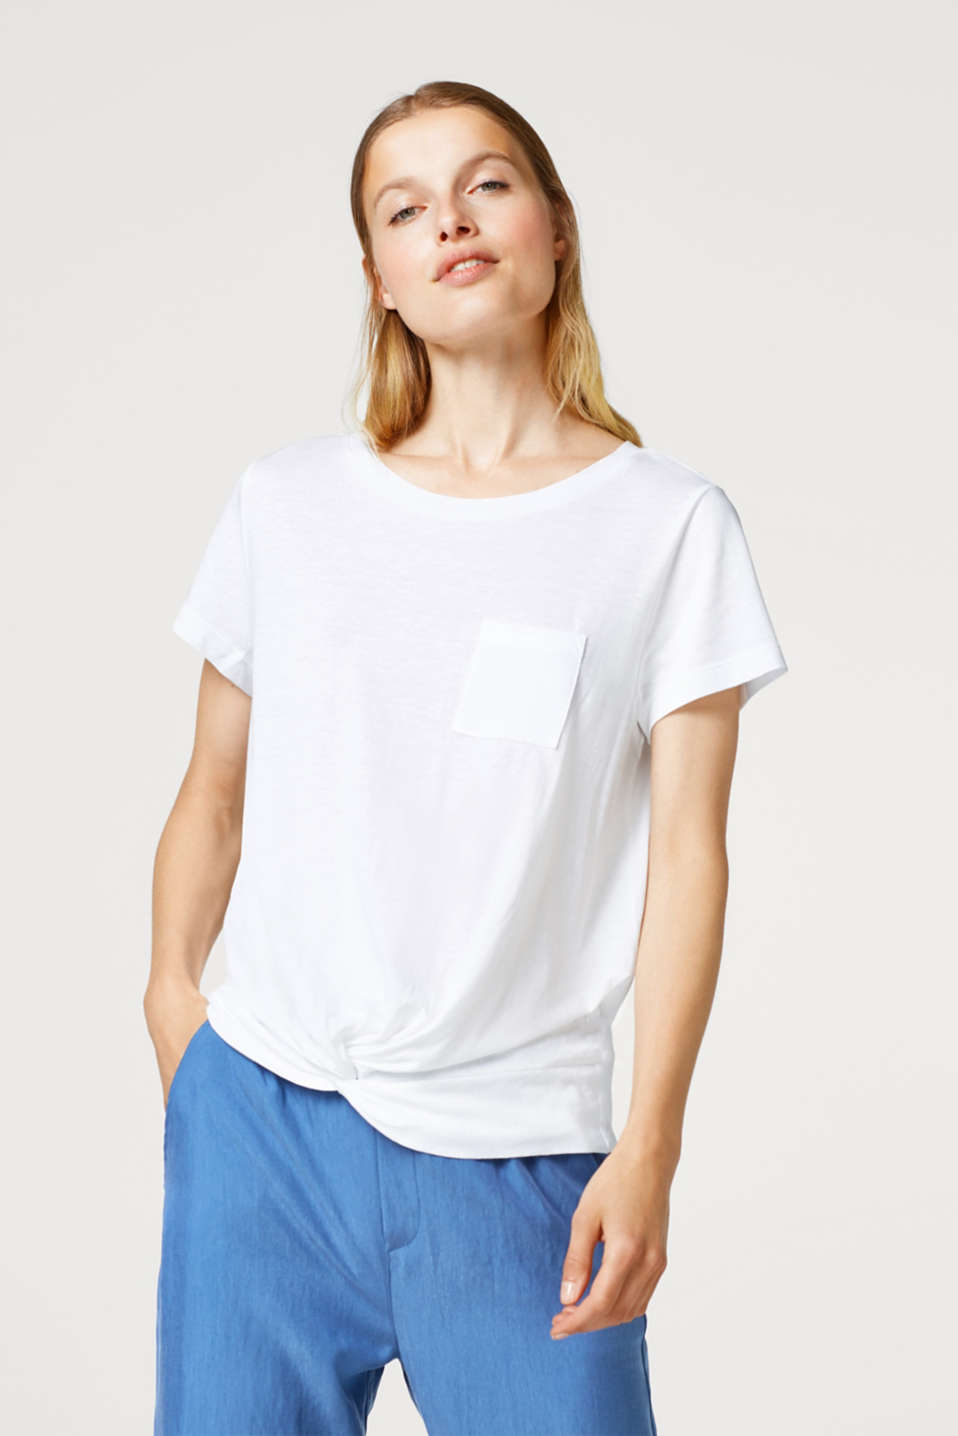 edc - T-shirt with knit details, in a cotton blend